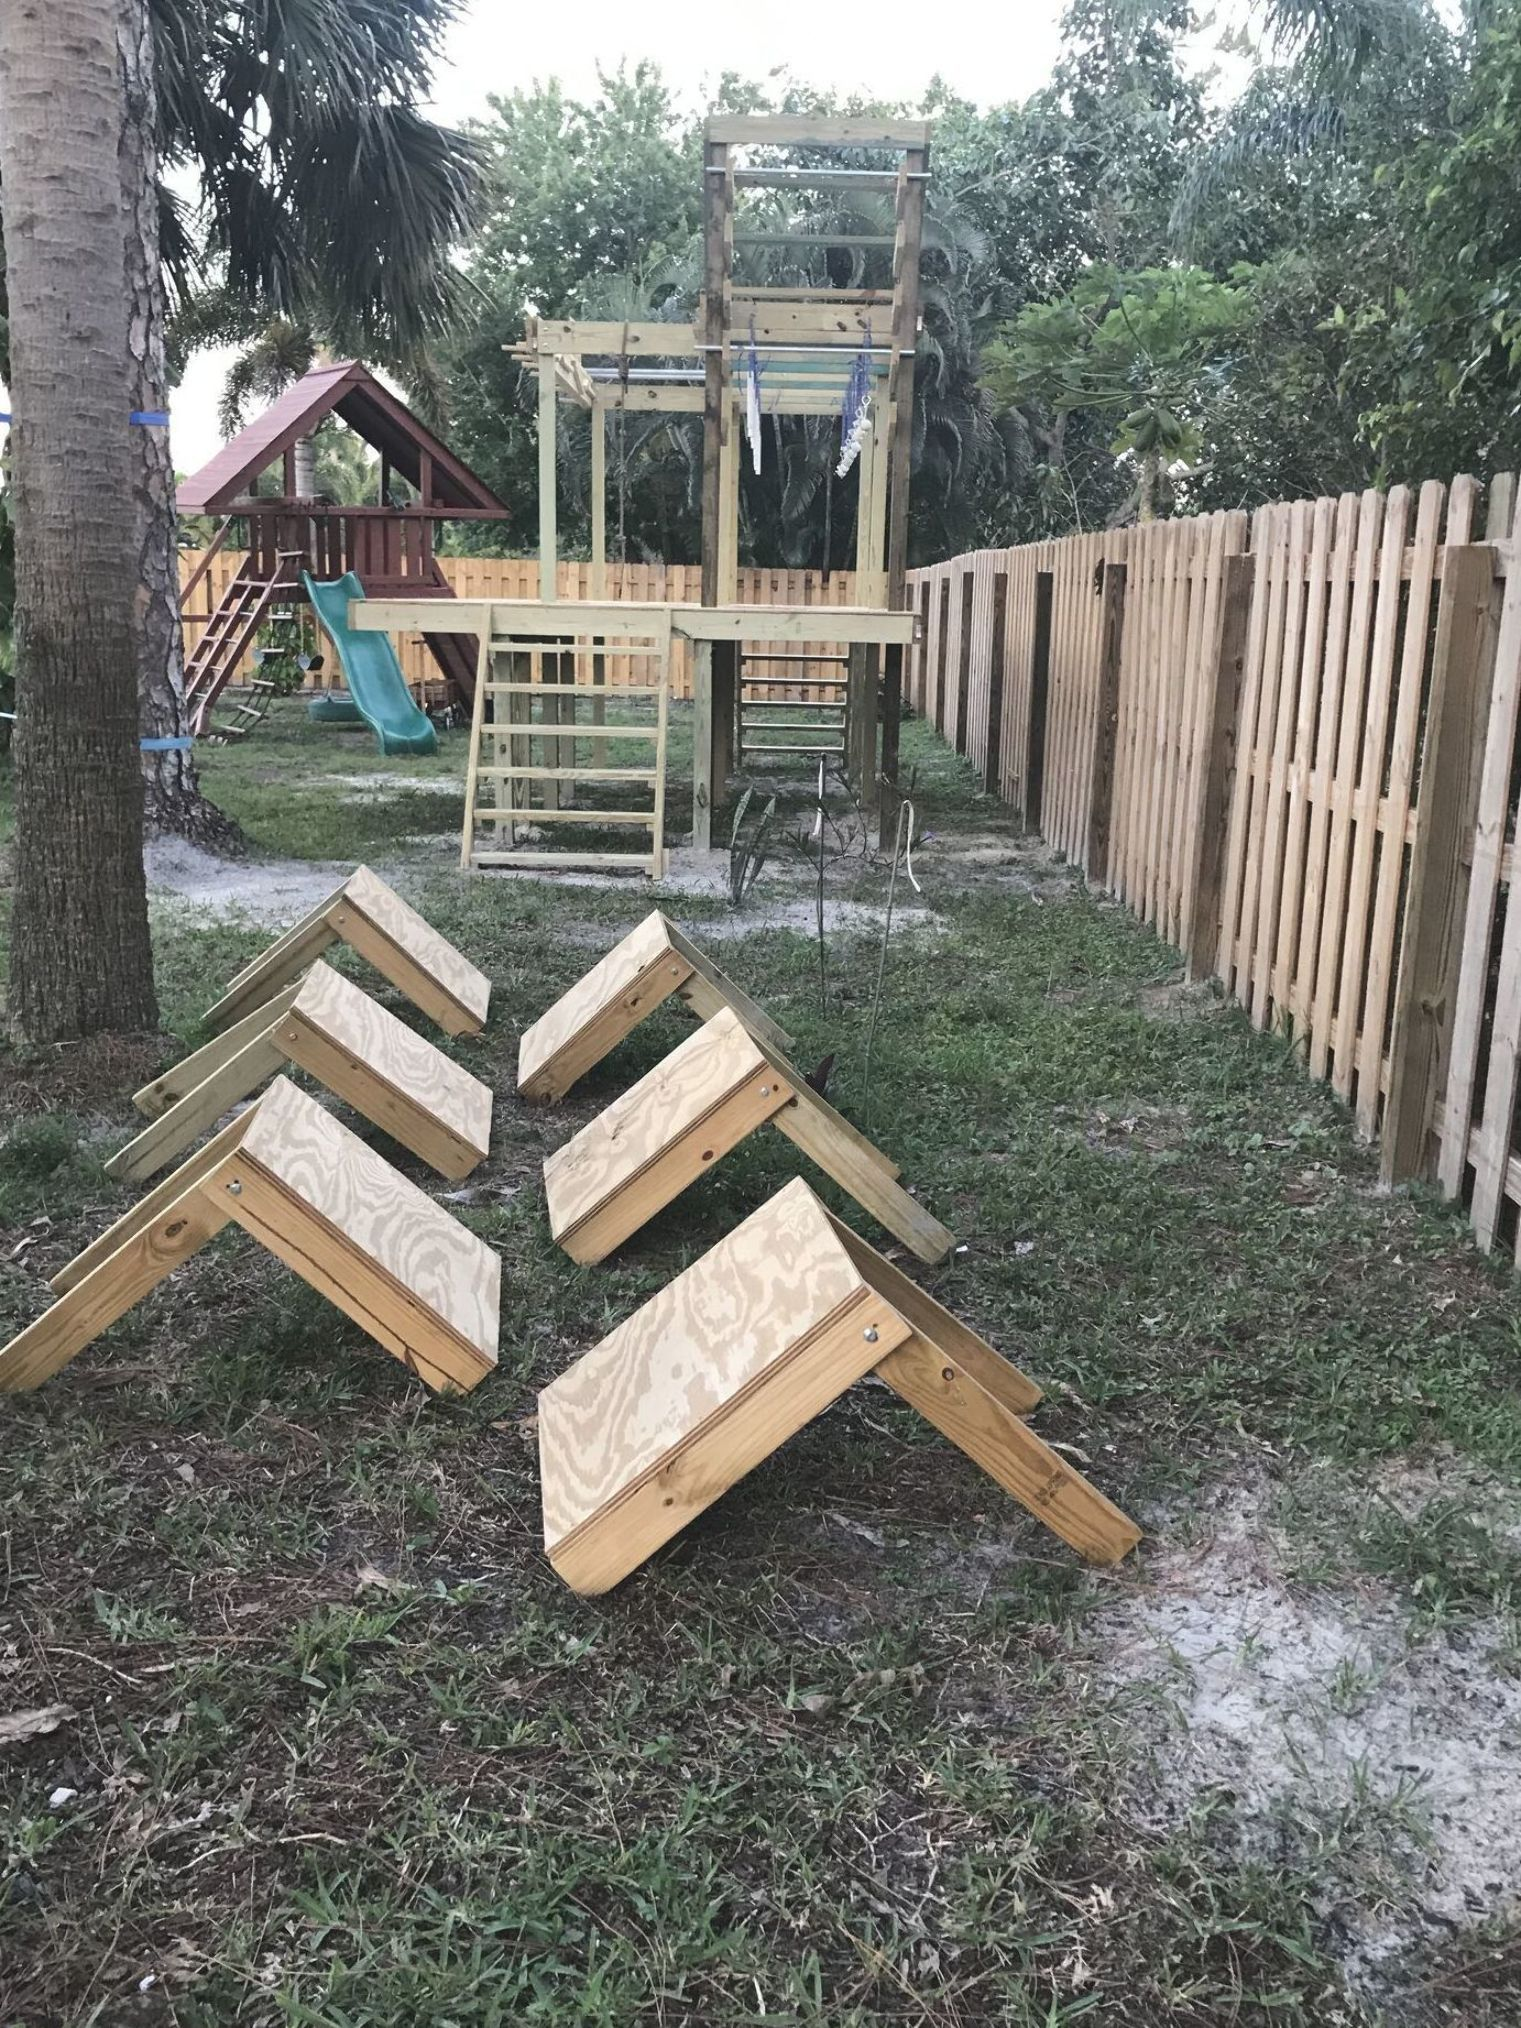 Whether You Are Serious About Becoming The First American Ninja Warrior Or You Would Just Lik Backyard Obstacle Course Ninja Warrior Course Kids Ninja Warrior Backyard diy obstacle course